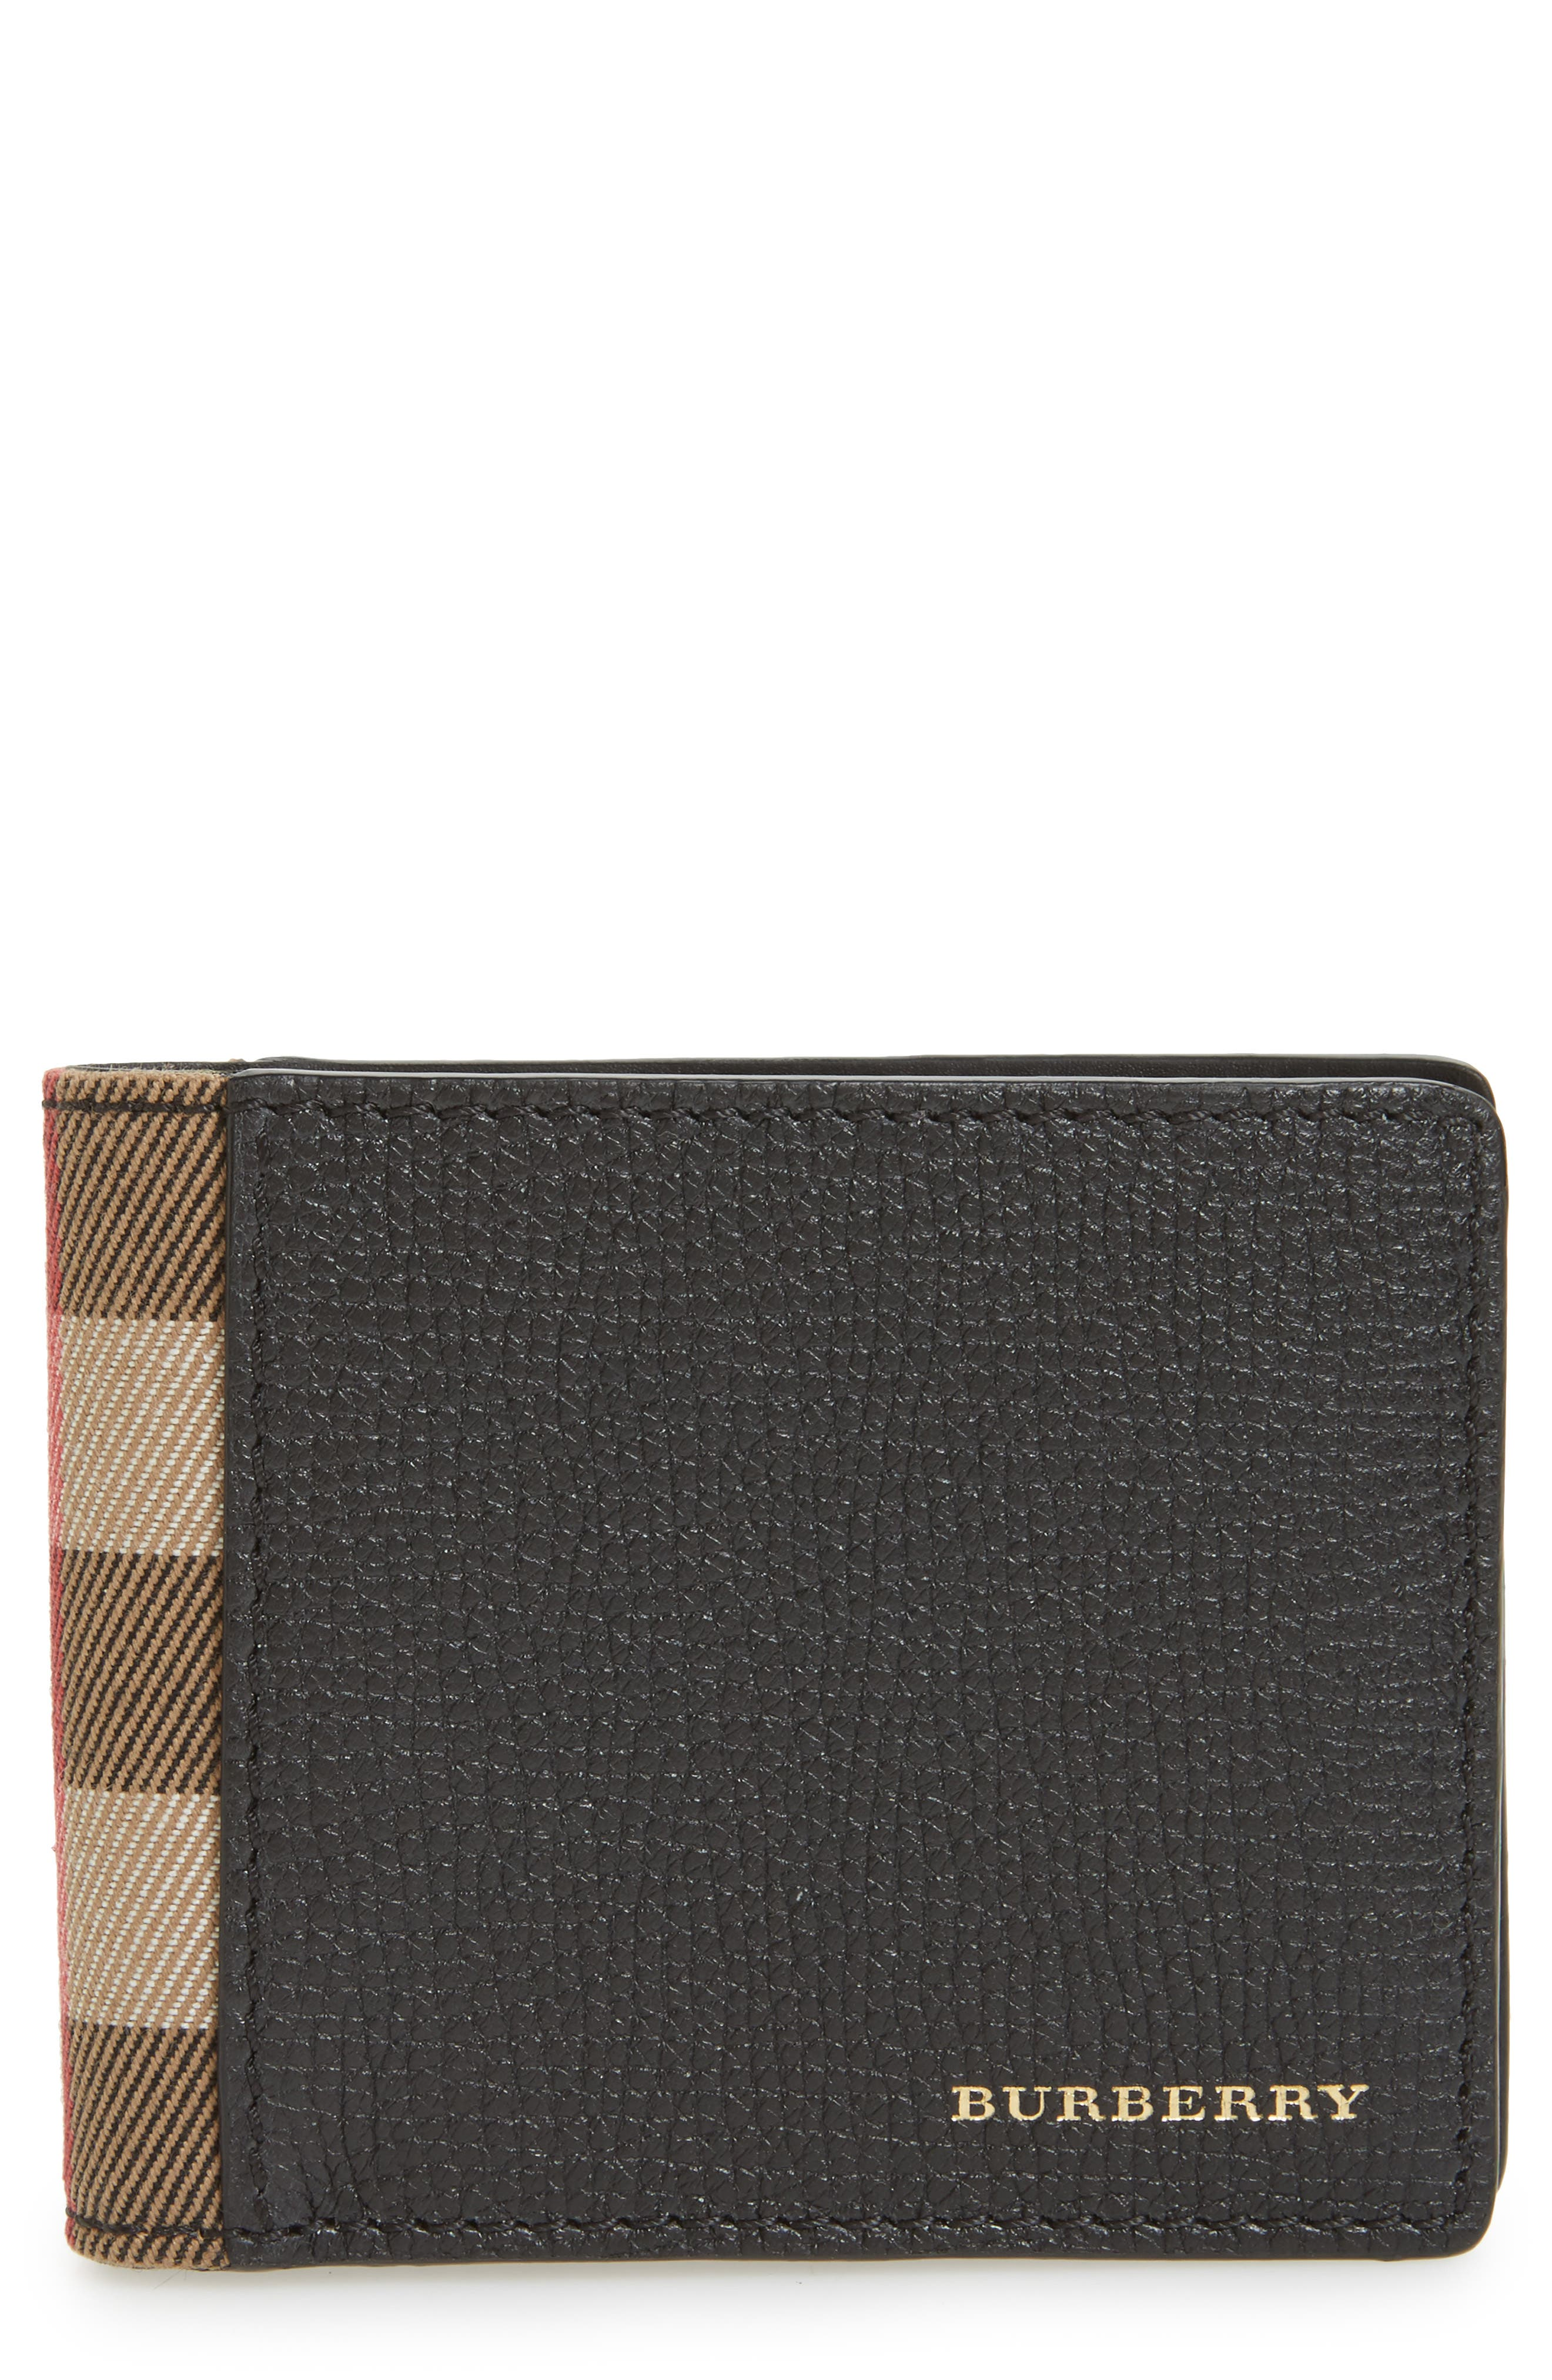 Main Image - Burberry Check Leather Wallet